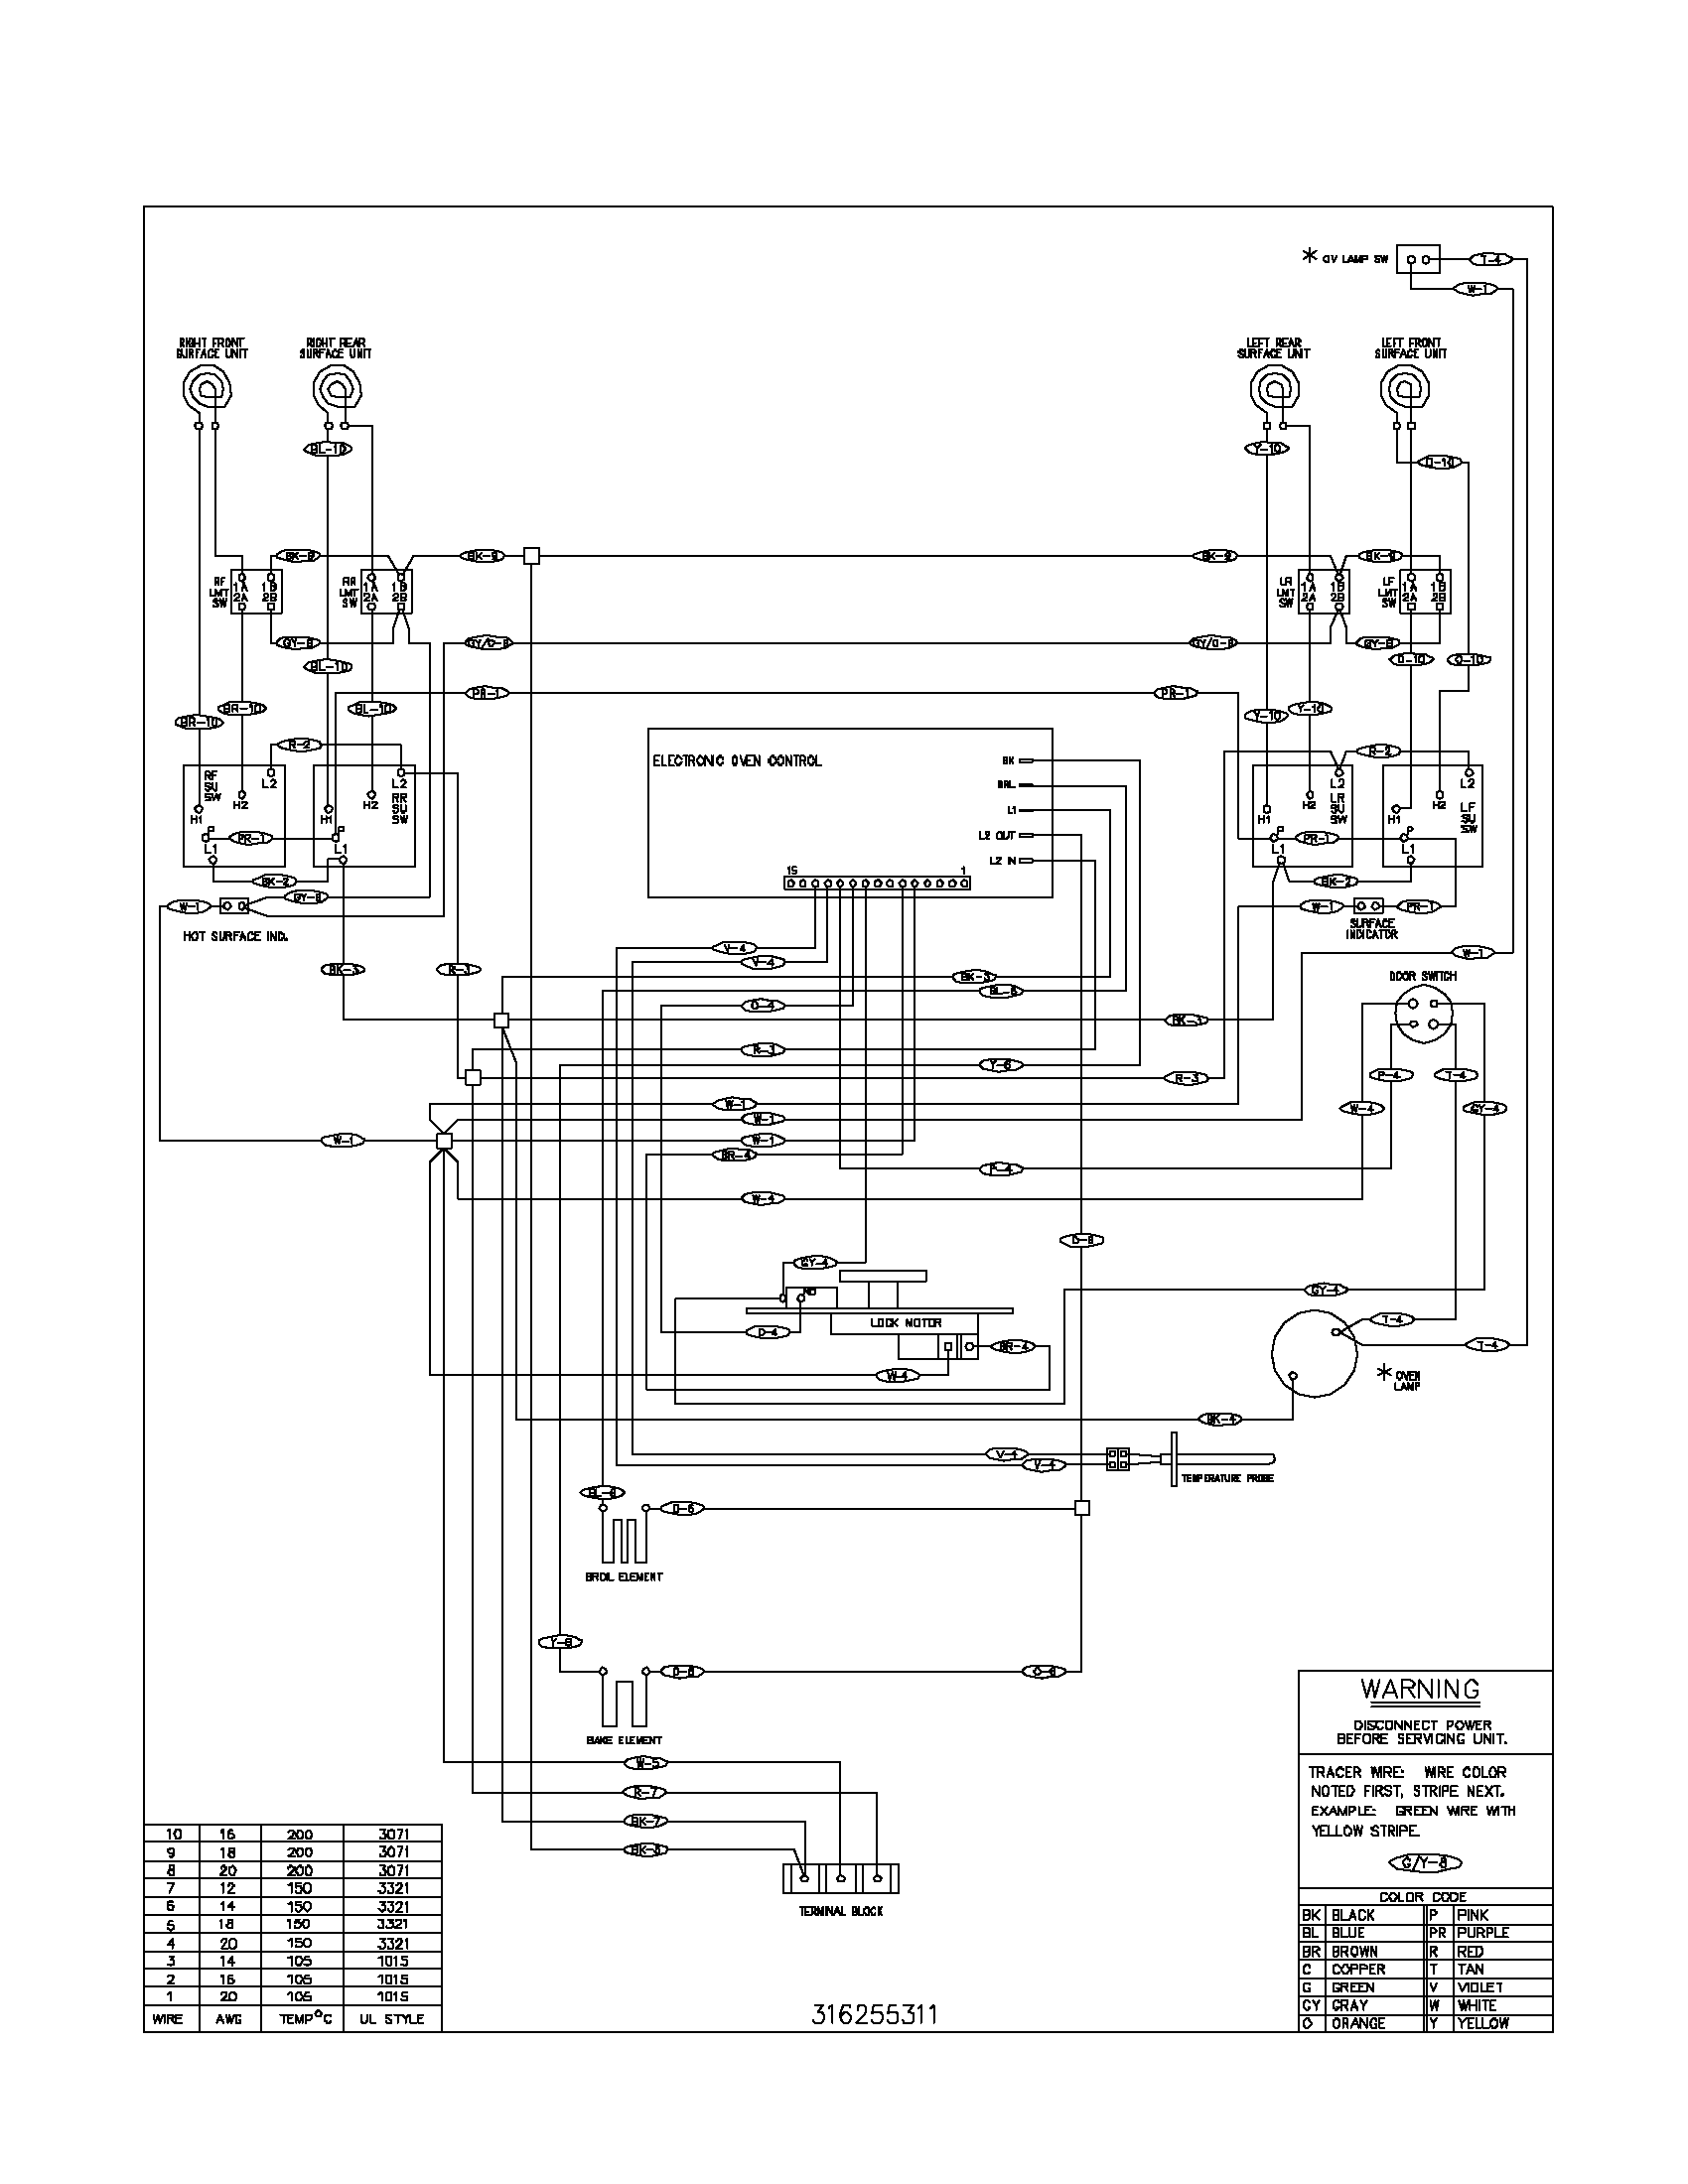 electrical stove wiring diagram